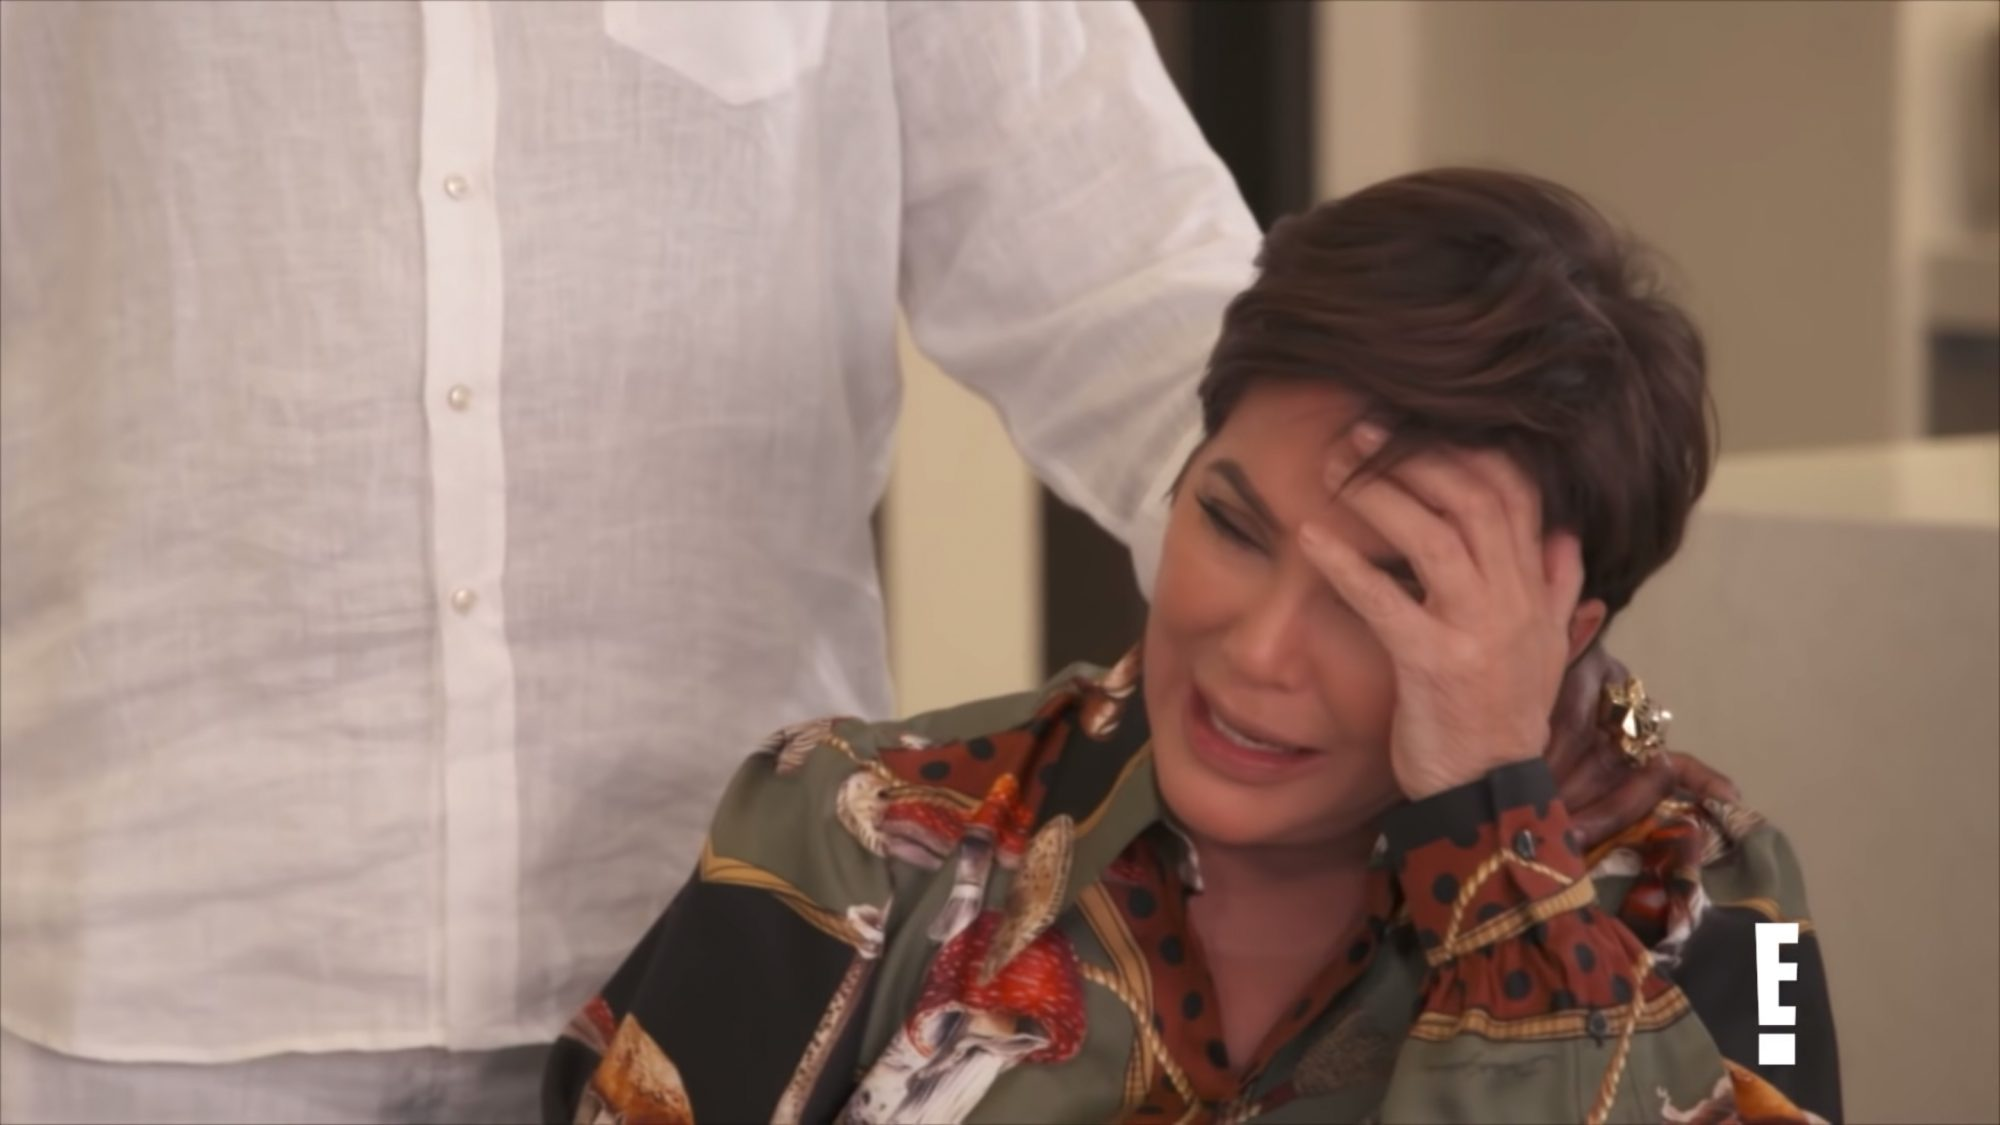 Kris Jenner Breaks Down While Discussing the end of KUWTK